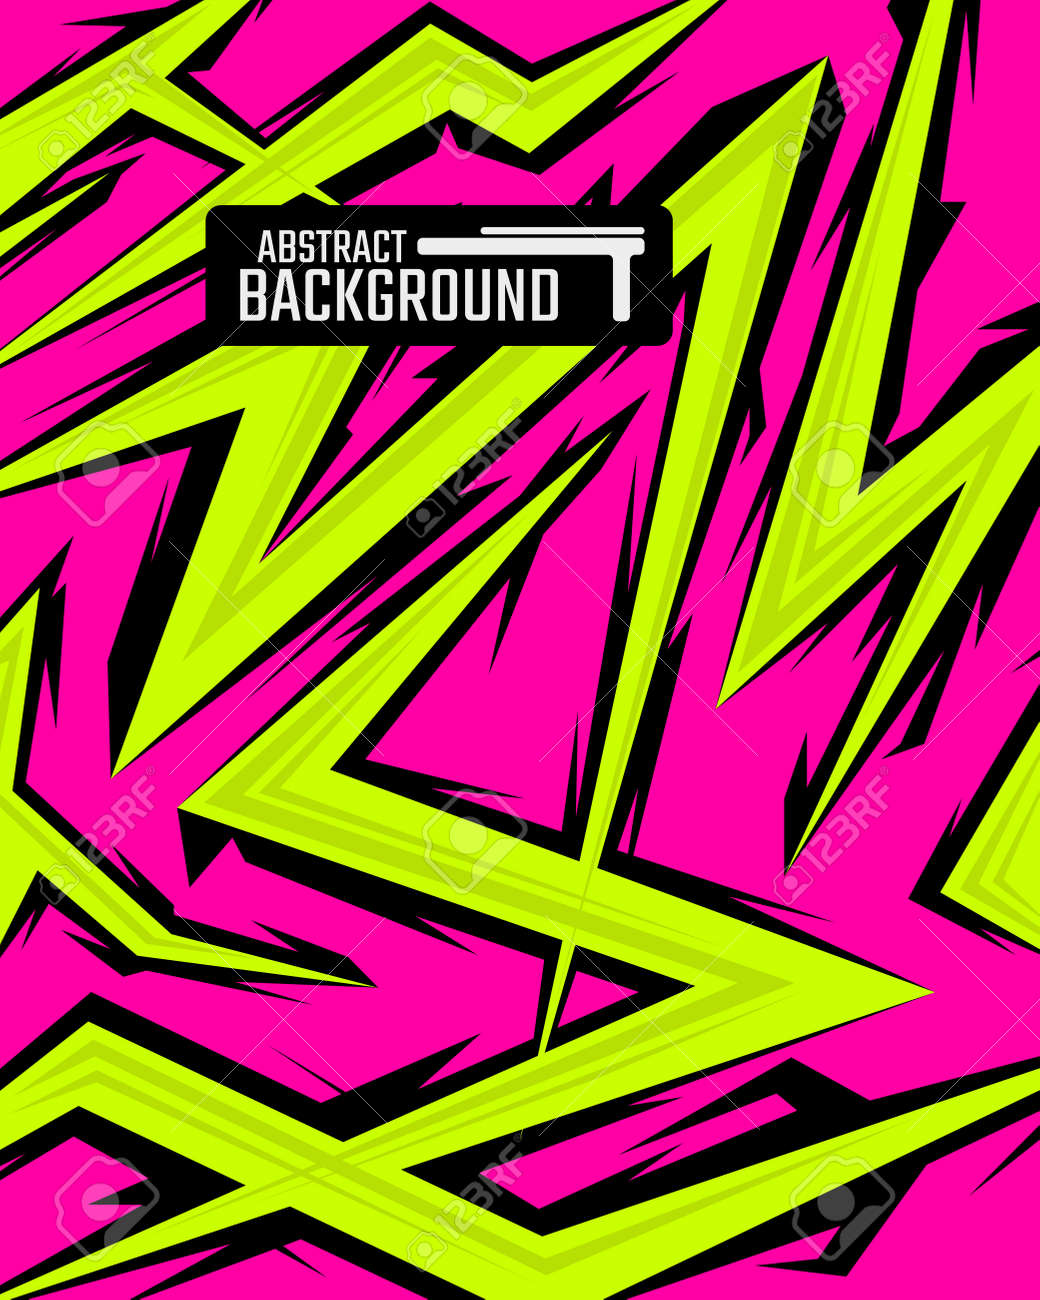 Abstract backgrounds for sports and games. Abstract racing backgrounds for t-shirts, race car livery, car vinyl stickers, etc. - 167561486